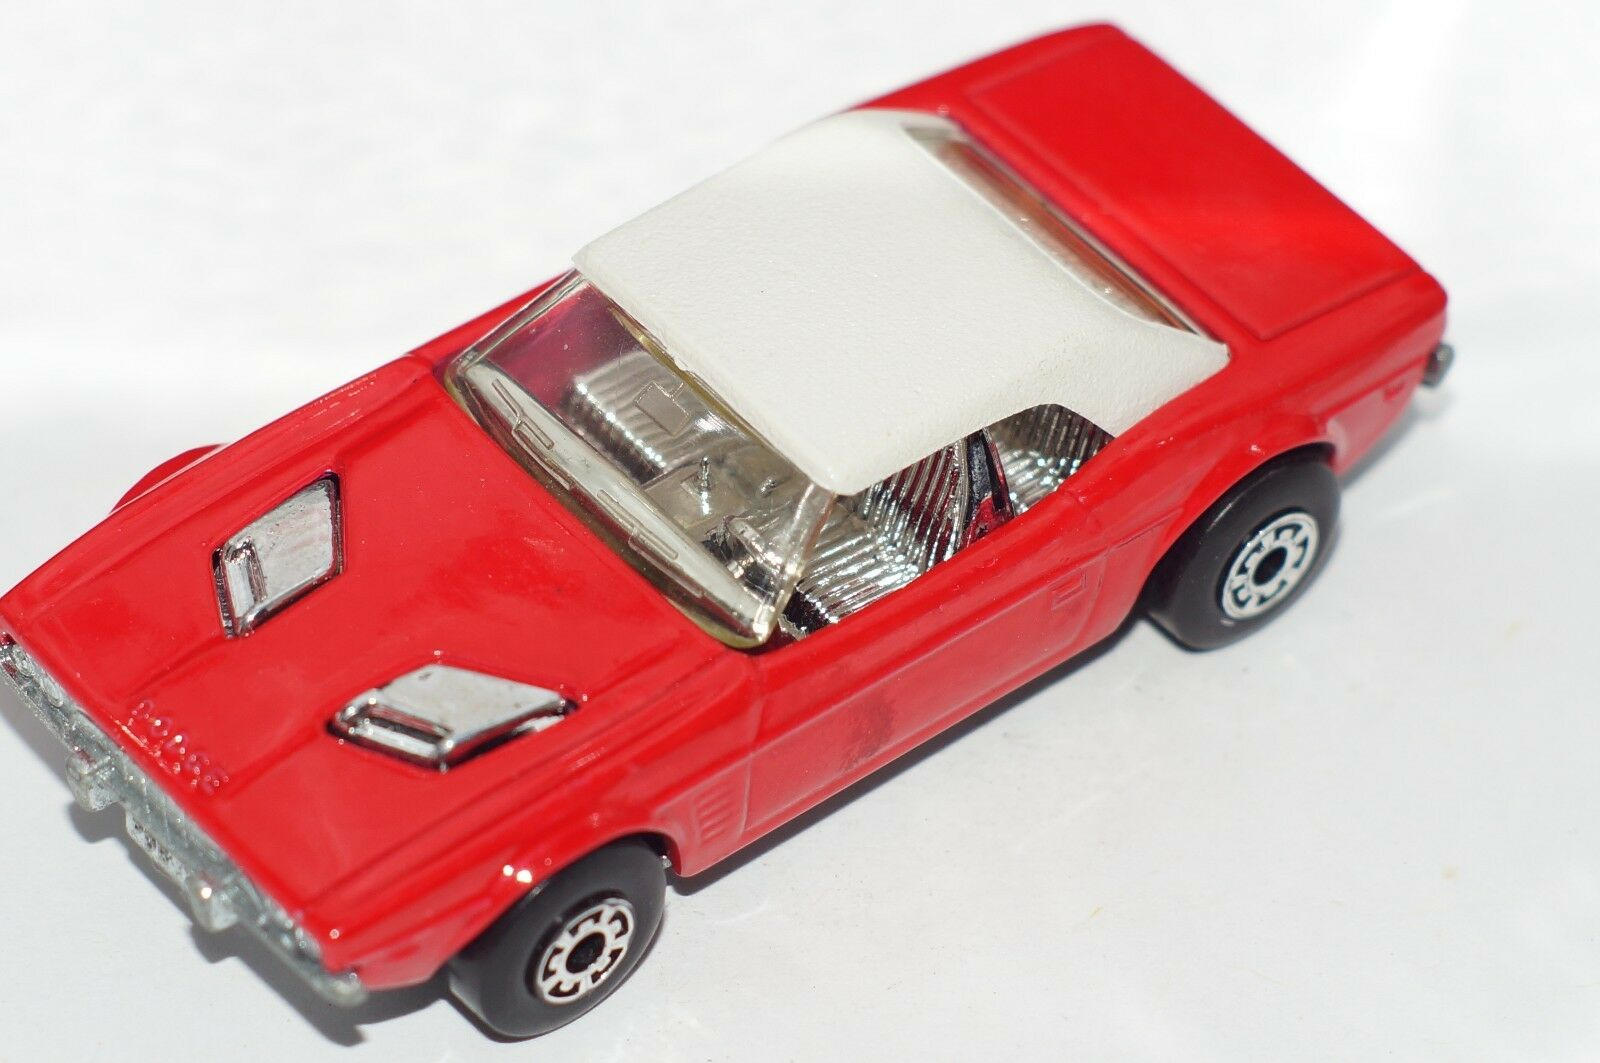 ORIGINAL Matchbox Superfast Dodge Challenger No 1 - Red color - Lesney - England